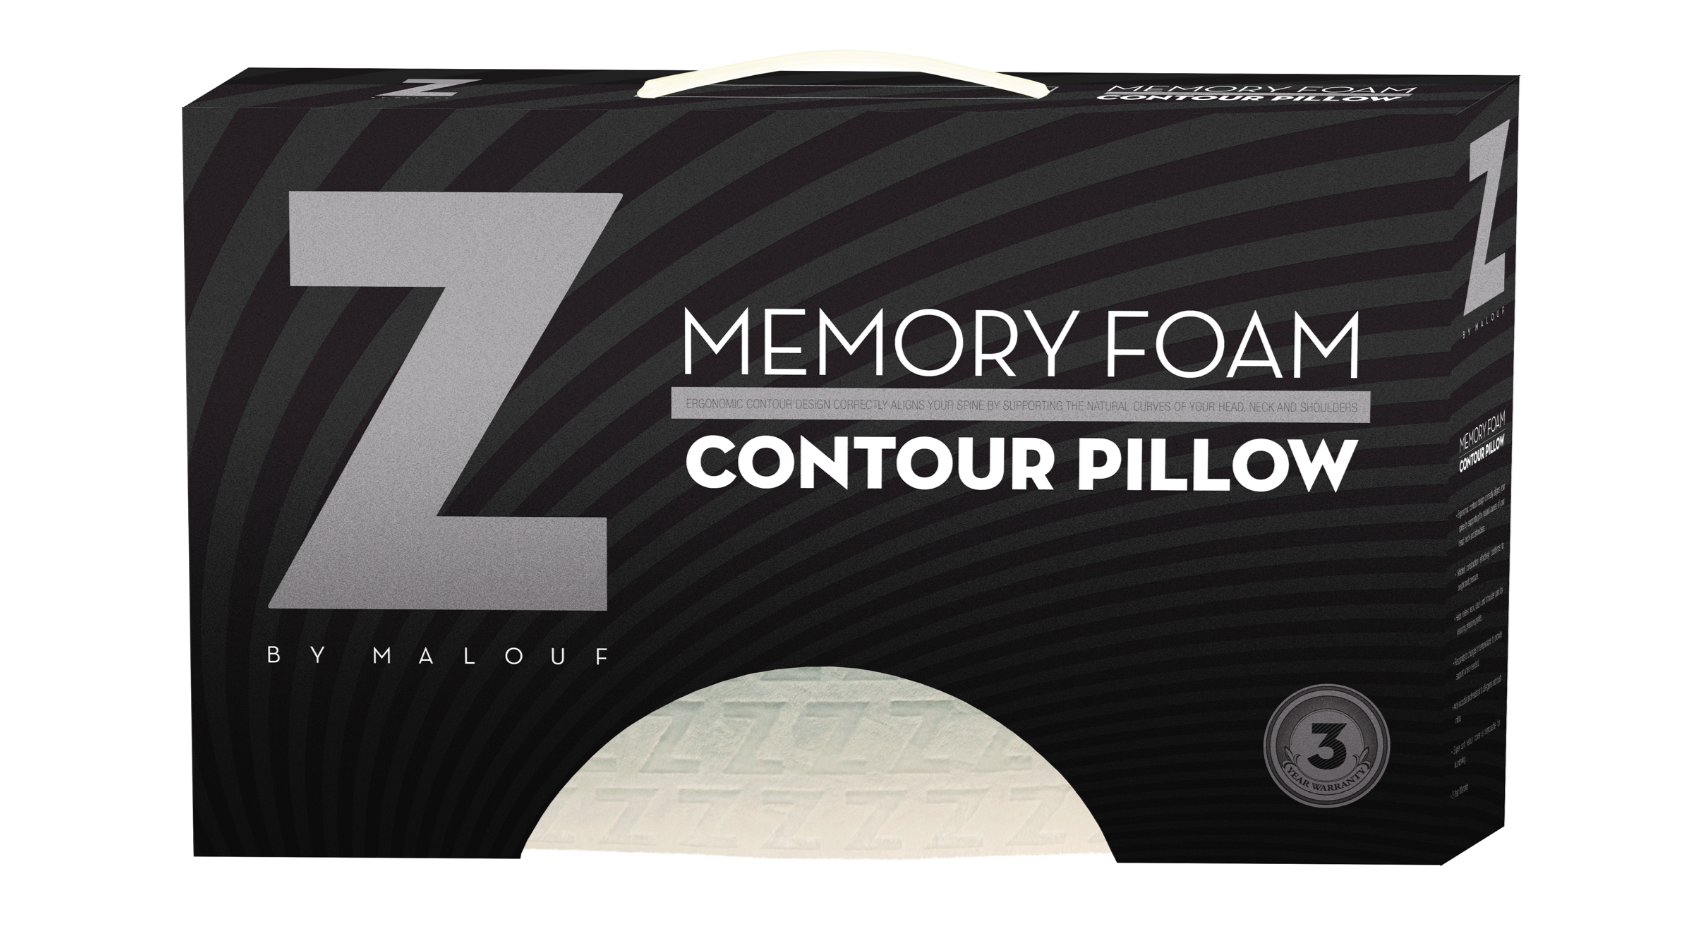 Malouf Memory Foam Contour Pillow - Pillows